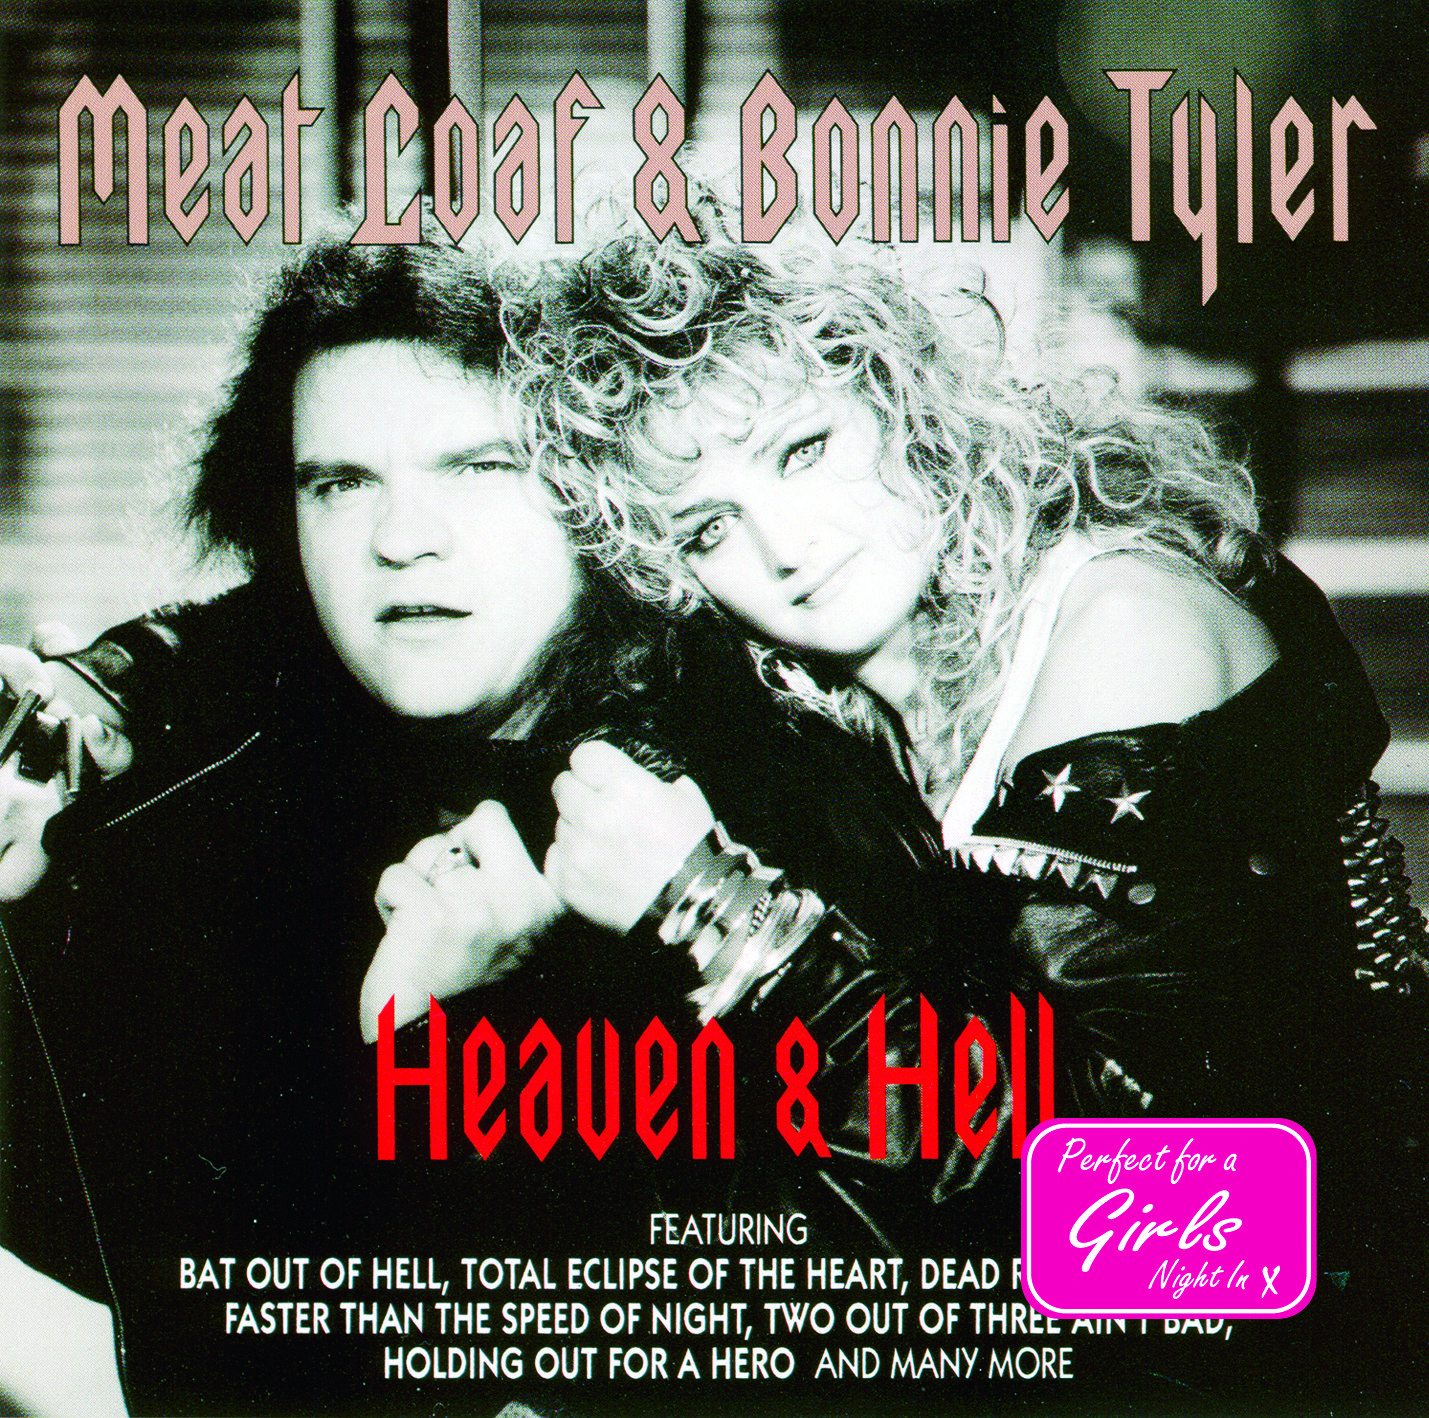 Meat Loaf & Bonnie Tyler Heaven And Hell Featuring Bat